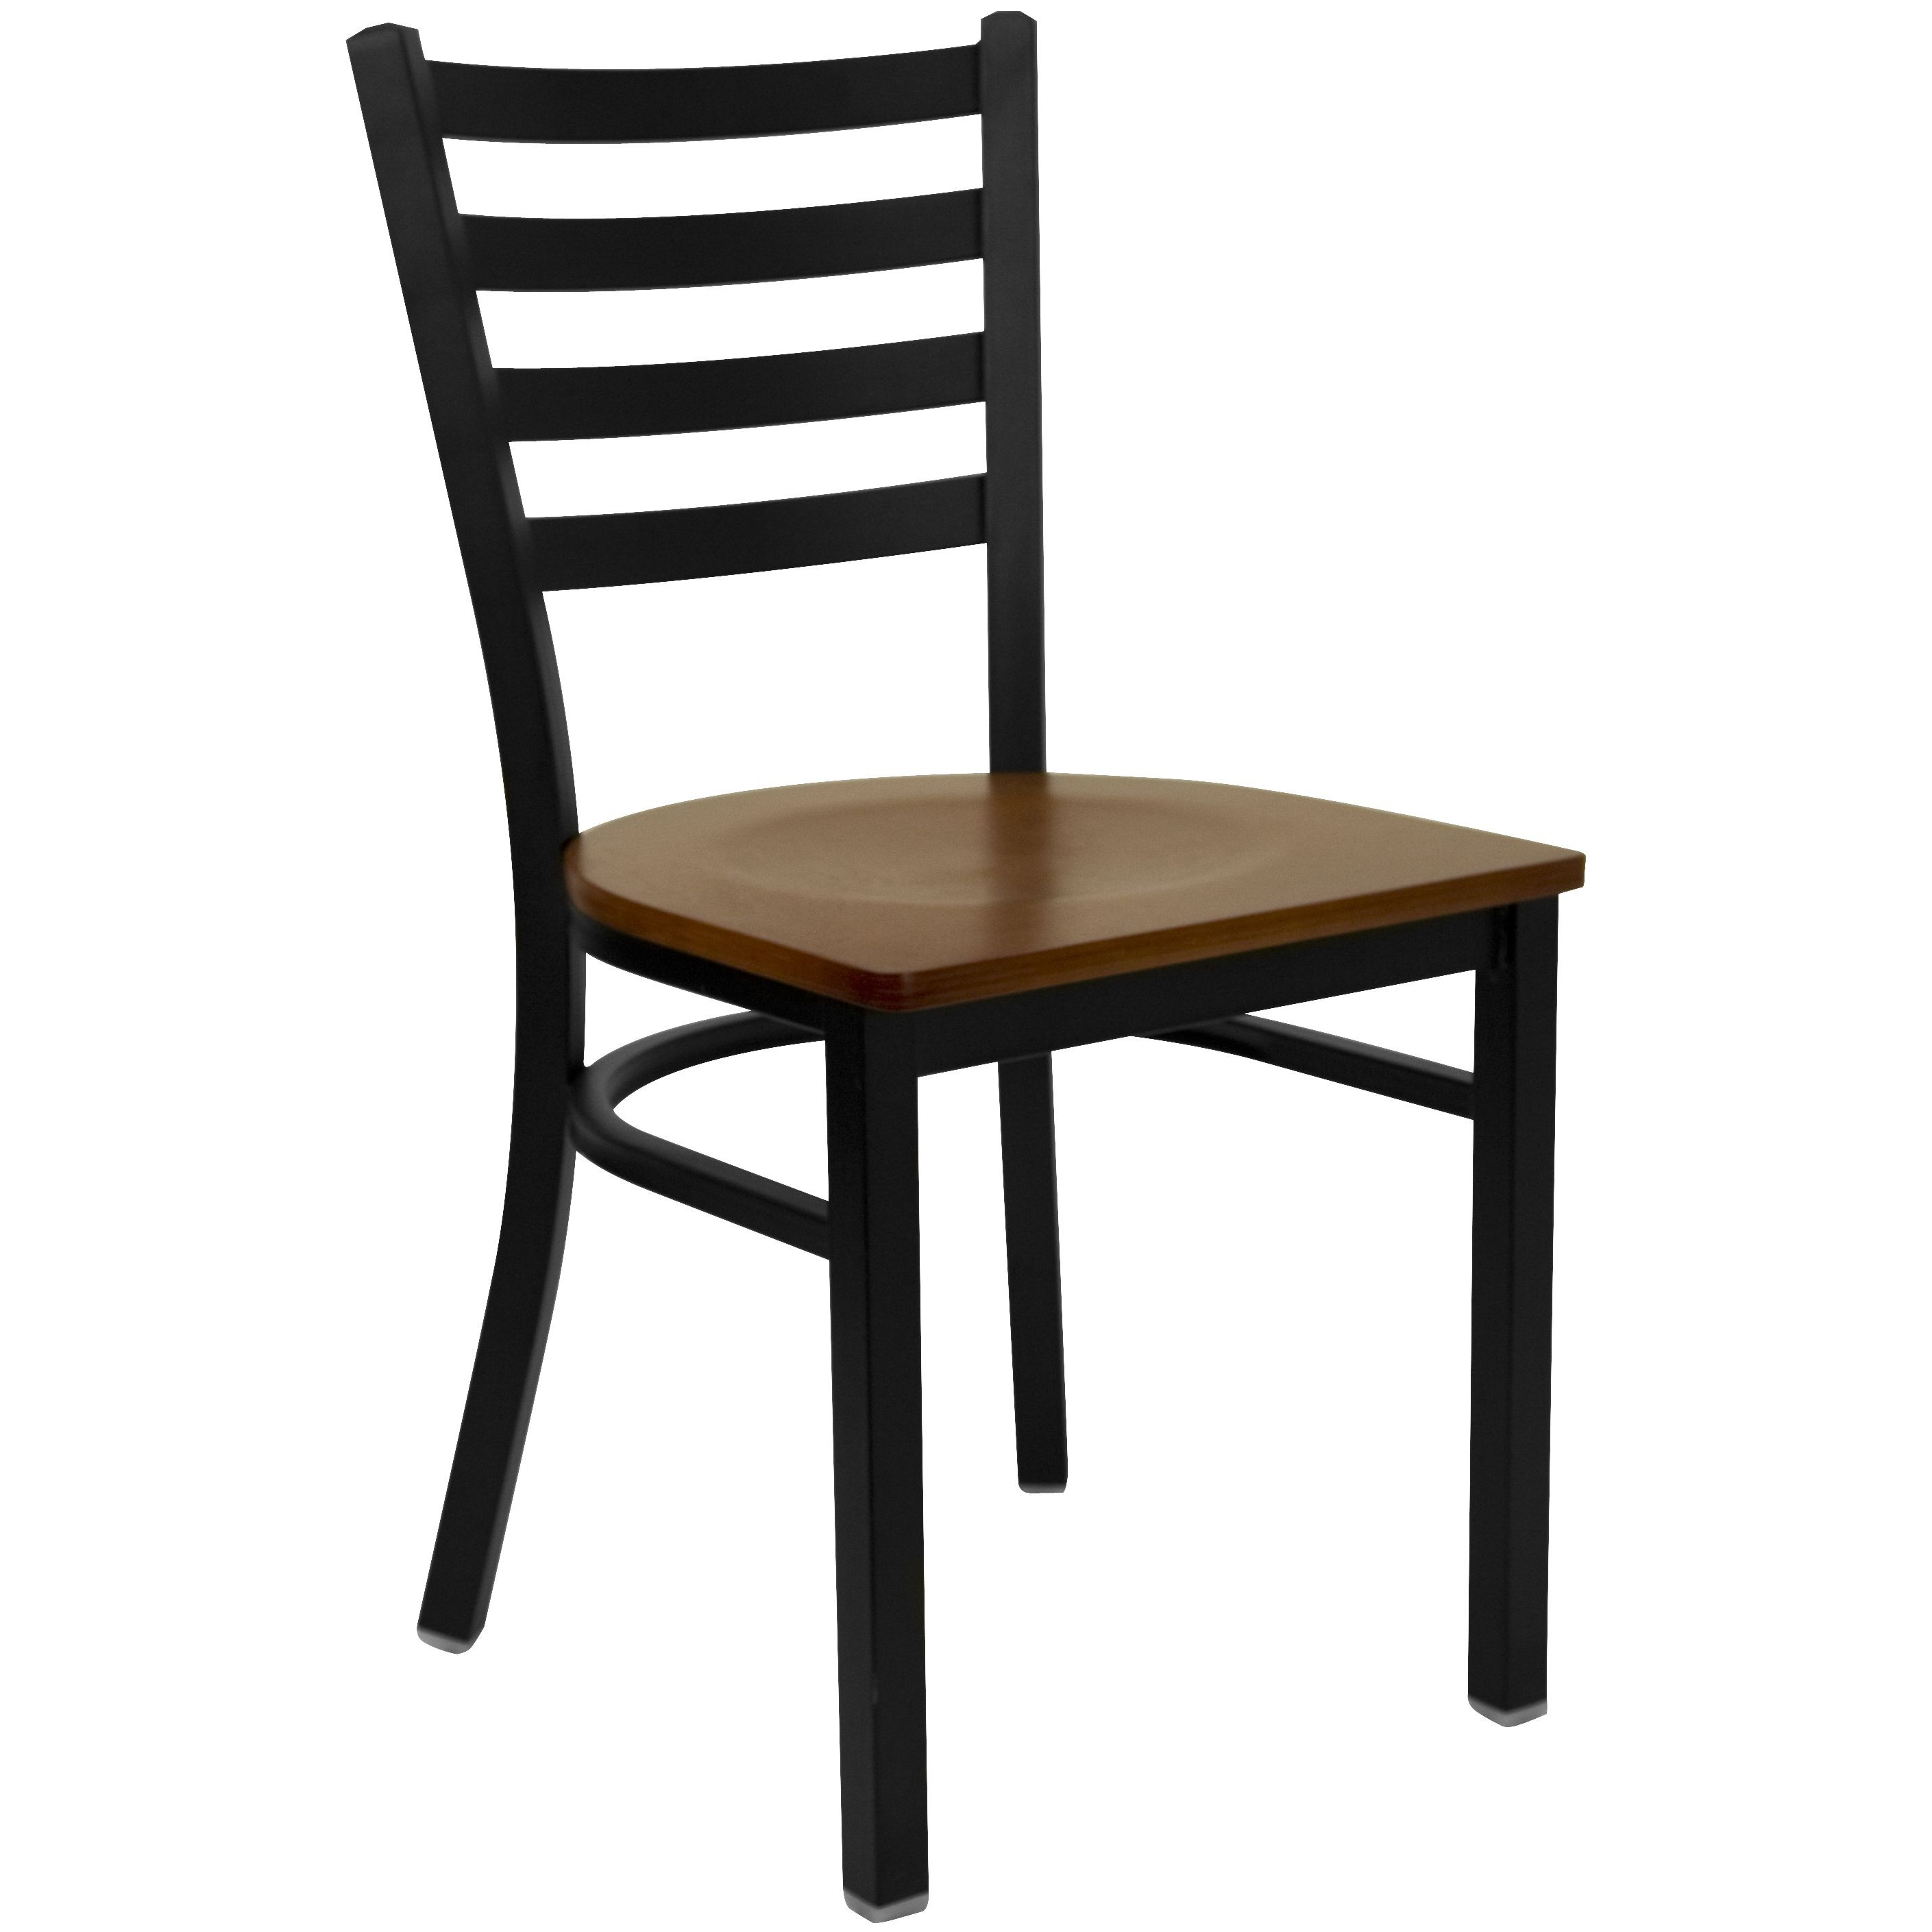 Flash Furniture XU-DG694BLAD-CHYW-GG Ladder Back Metal Restaurant Chair with Cherry Wood Seat Black Powder Coat Frame